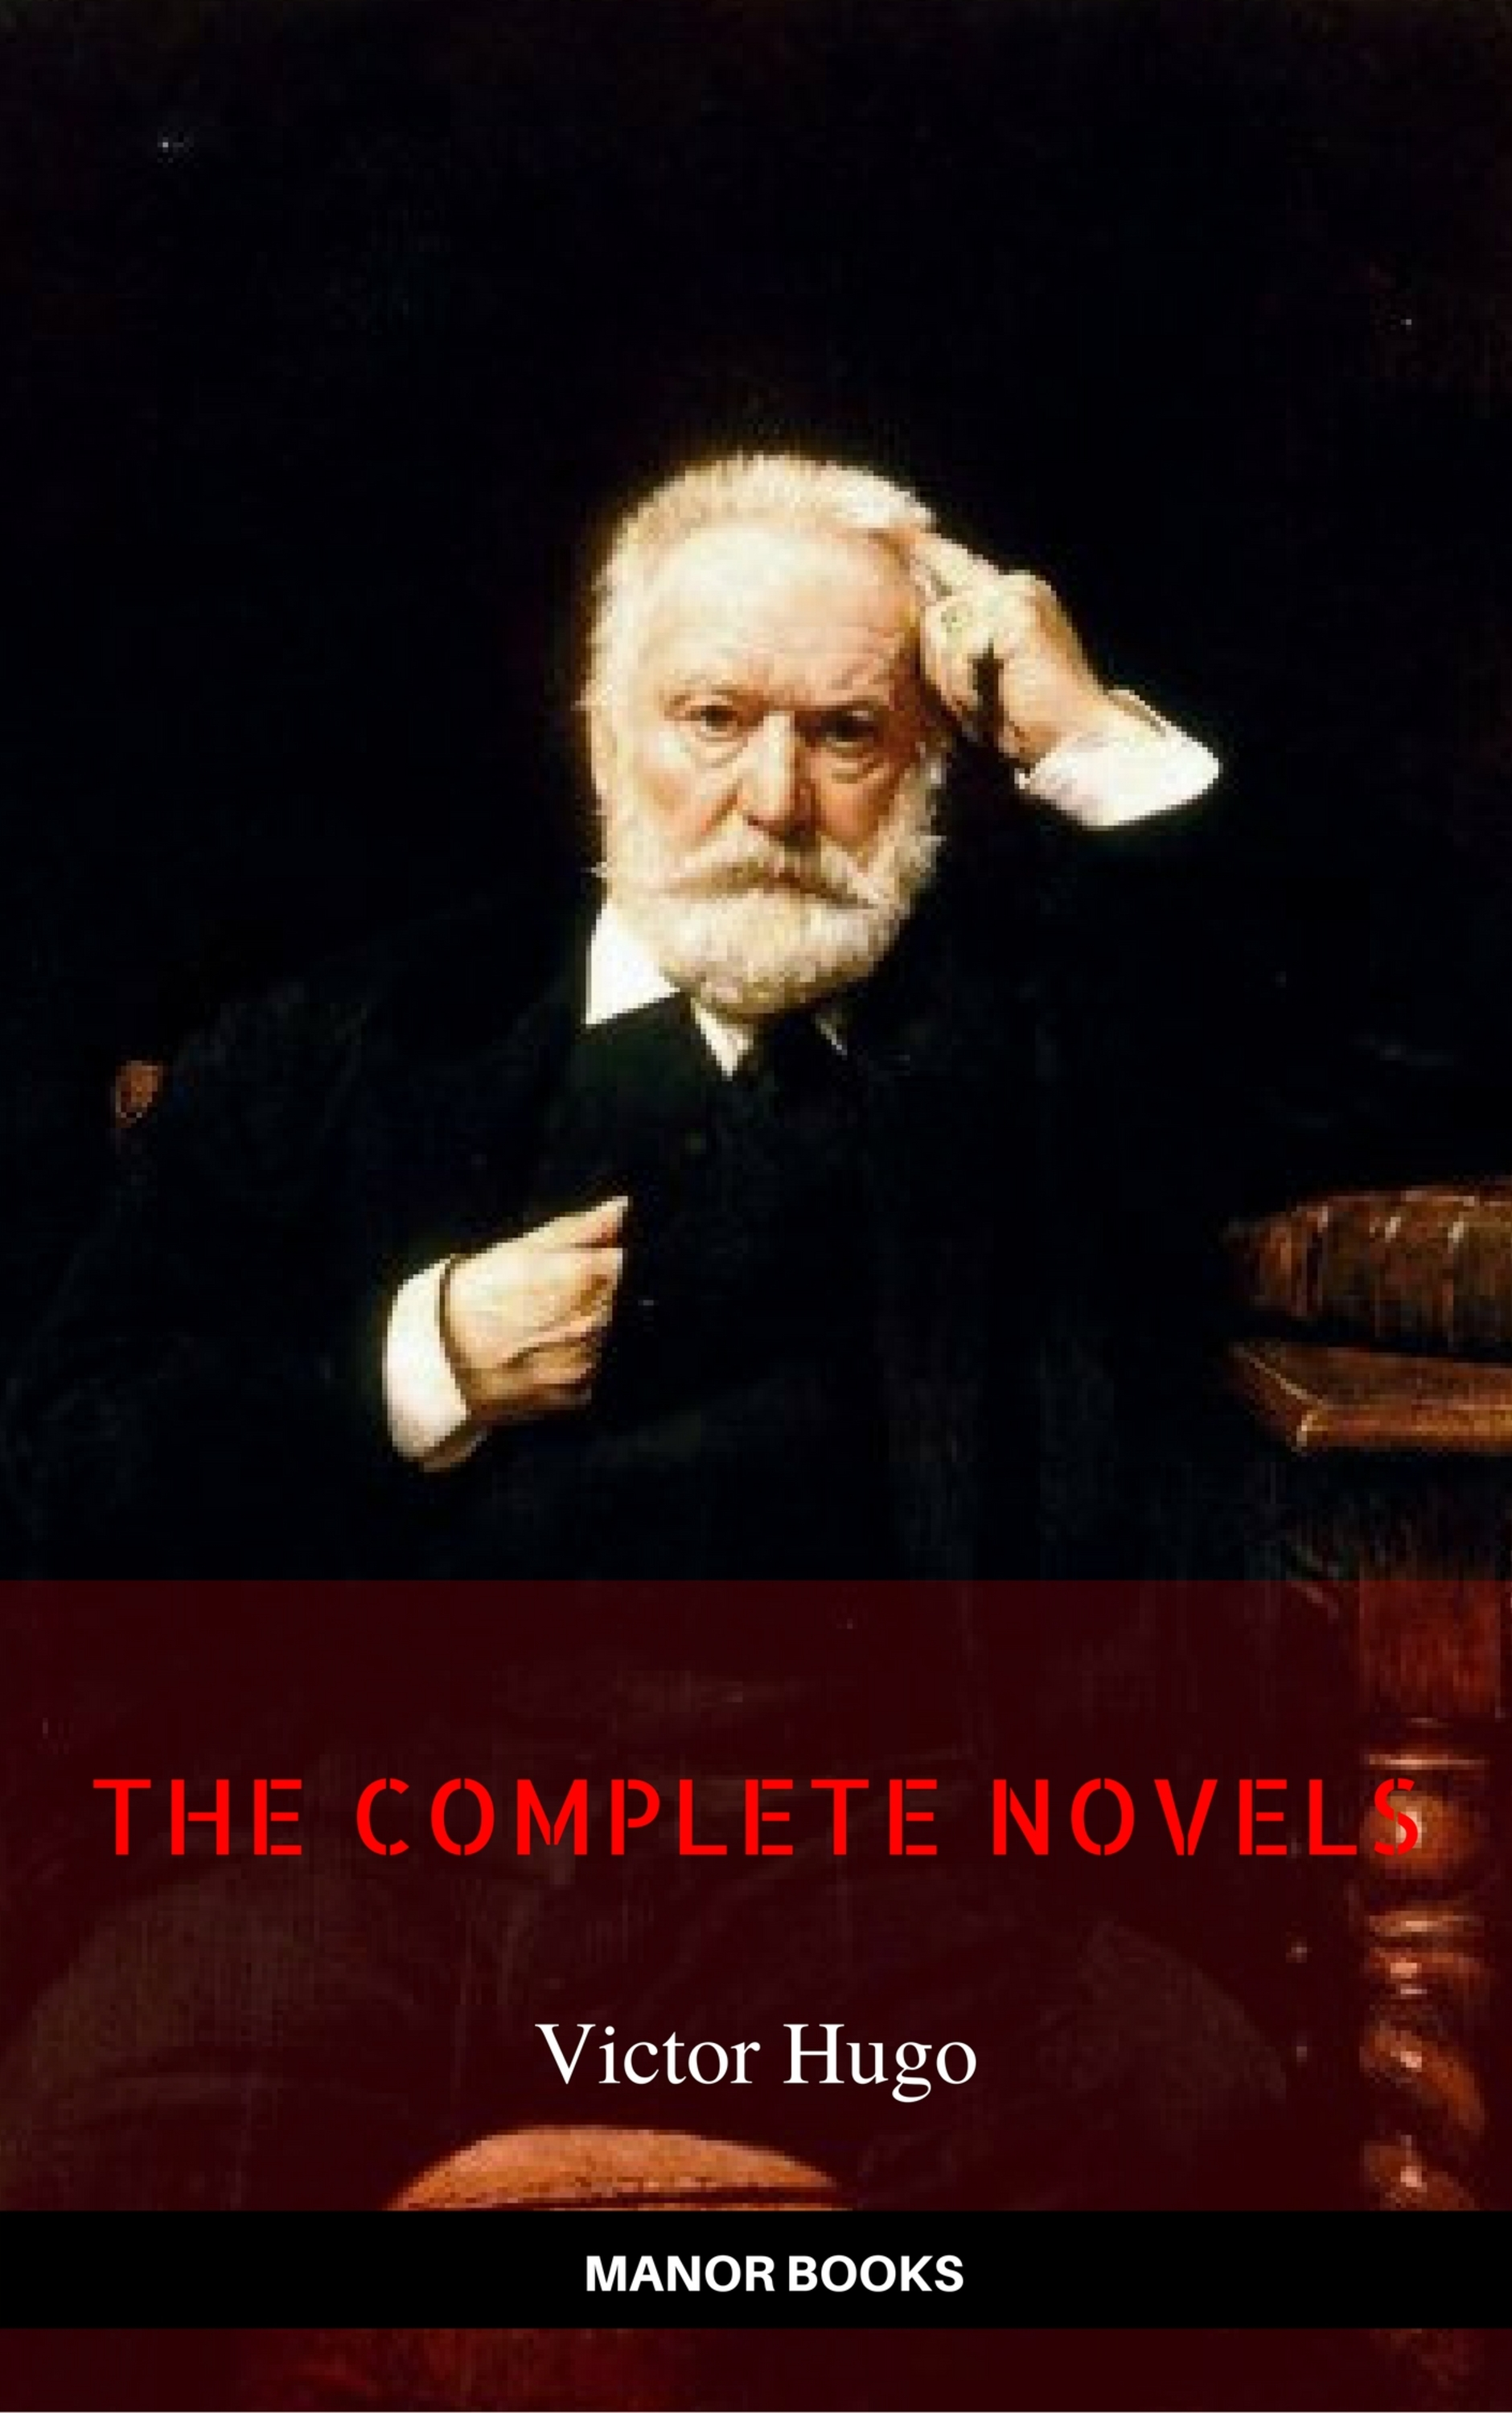 victor hugo the complete novels newly updated manor books publishing the greatest writers of all time